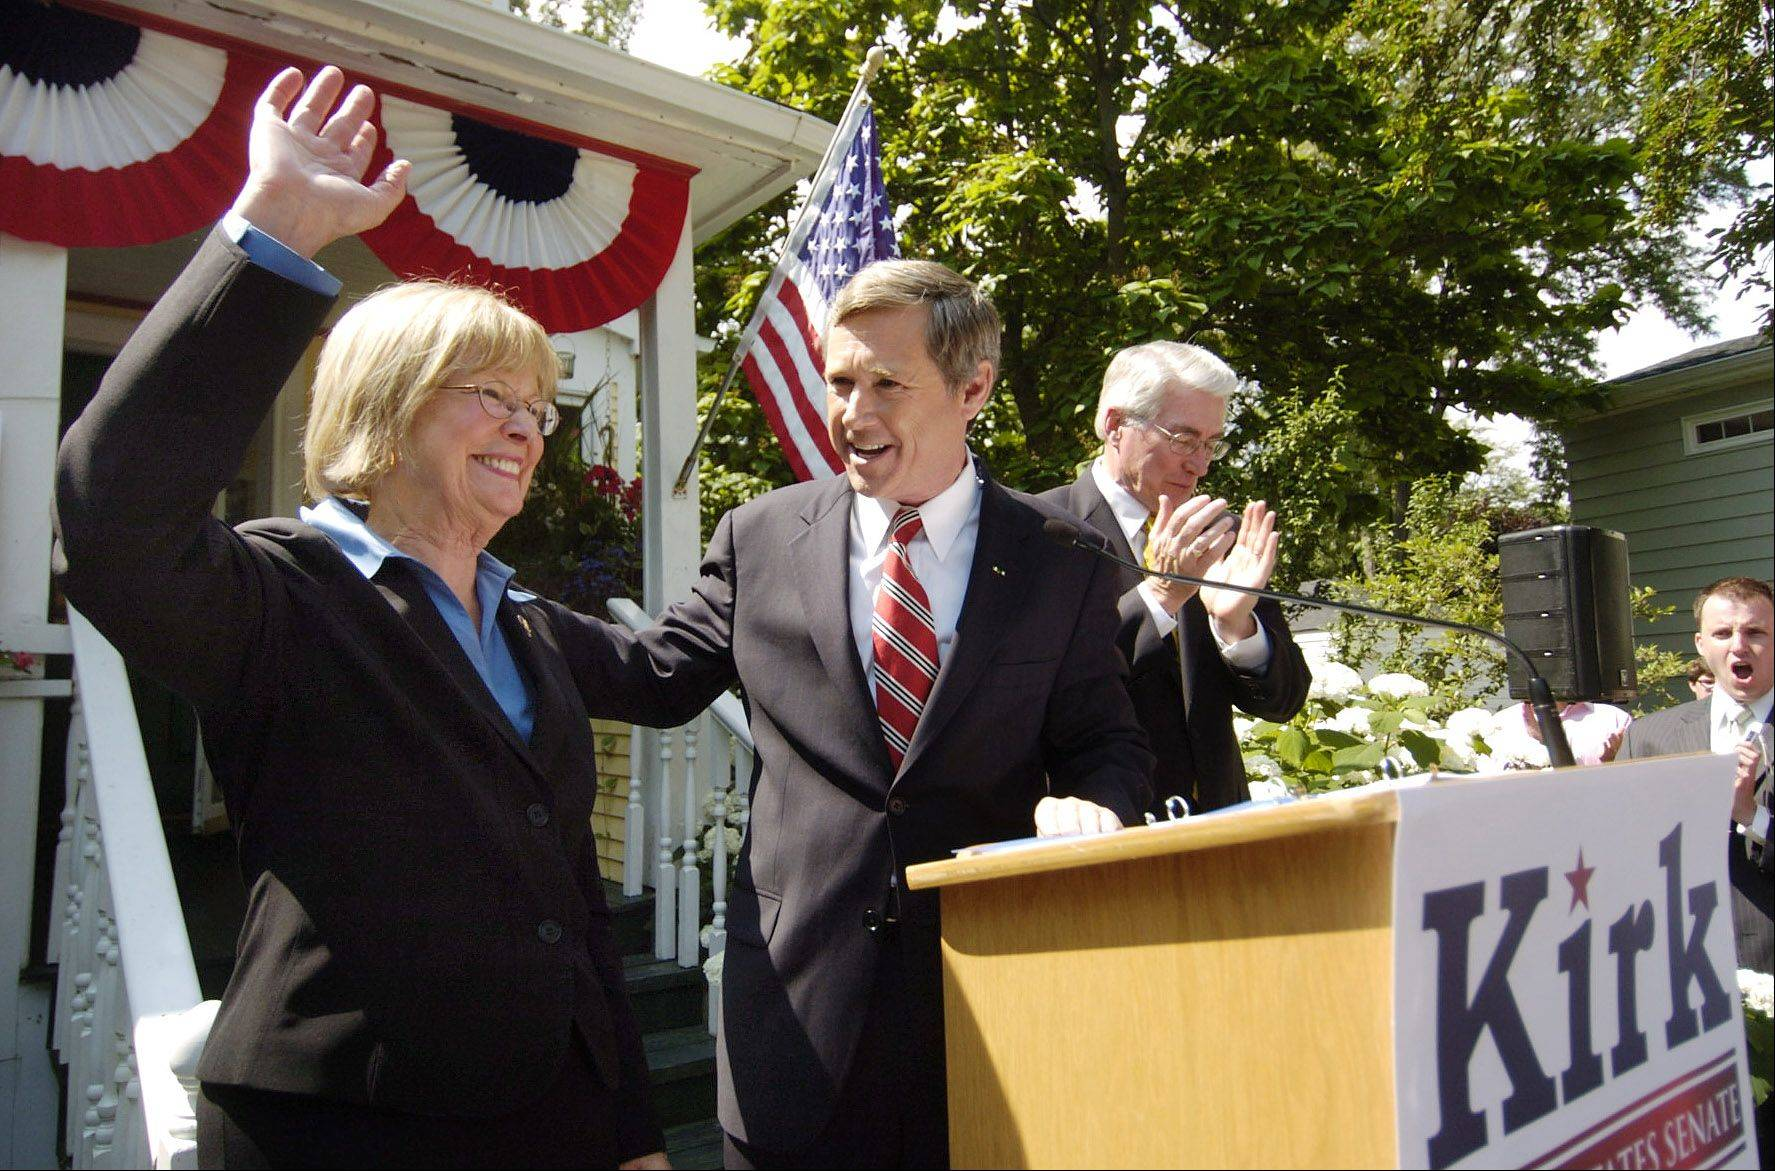 In this 2009 photo, then-Congressman Mark Kirk acknowledges Dupage Congresswoman Judy Biggert as one of his biggest supporters after announcing he is running for the U.S. Senate.